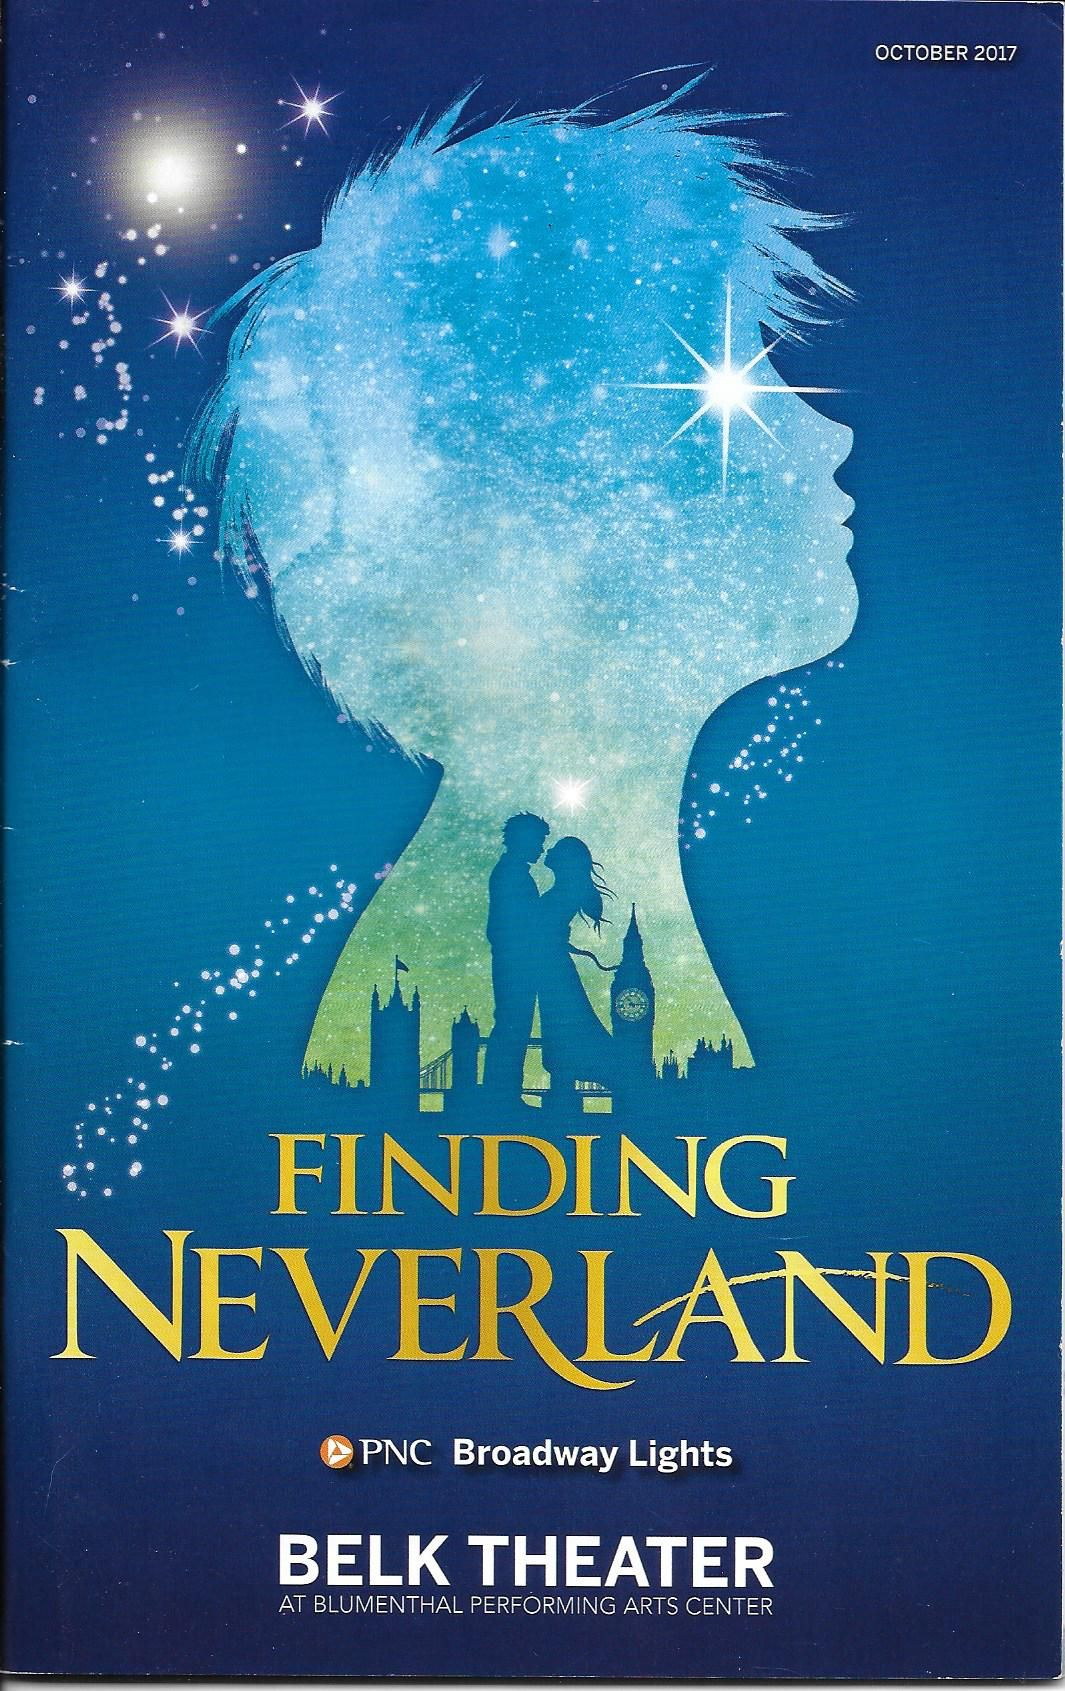 Finding Neverland Belk Theater Charlotte, NC 10/8/17